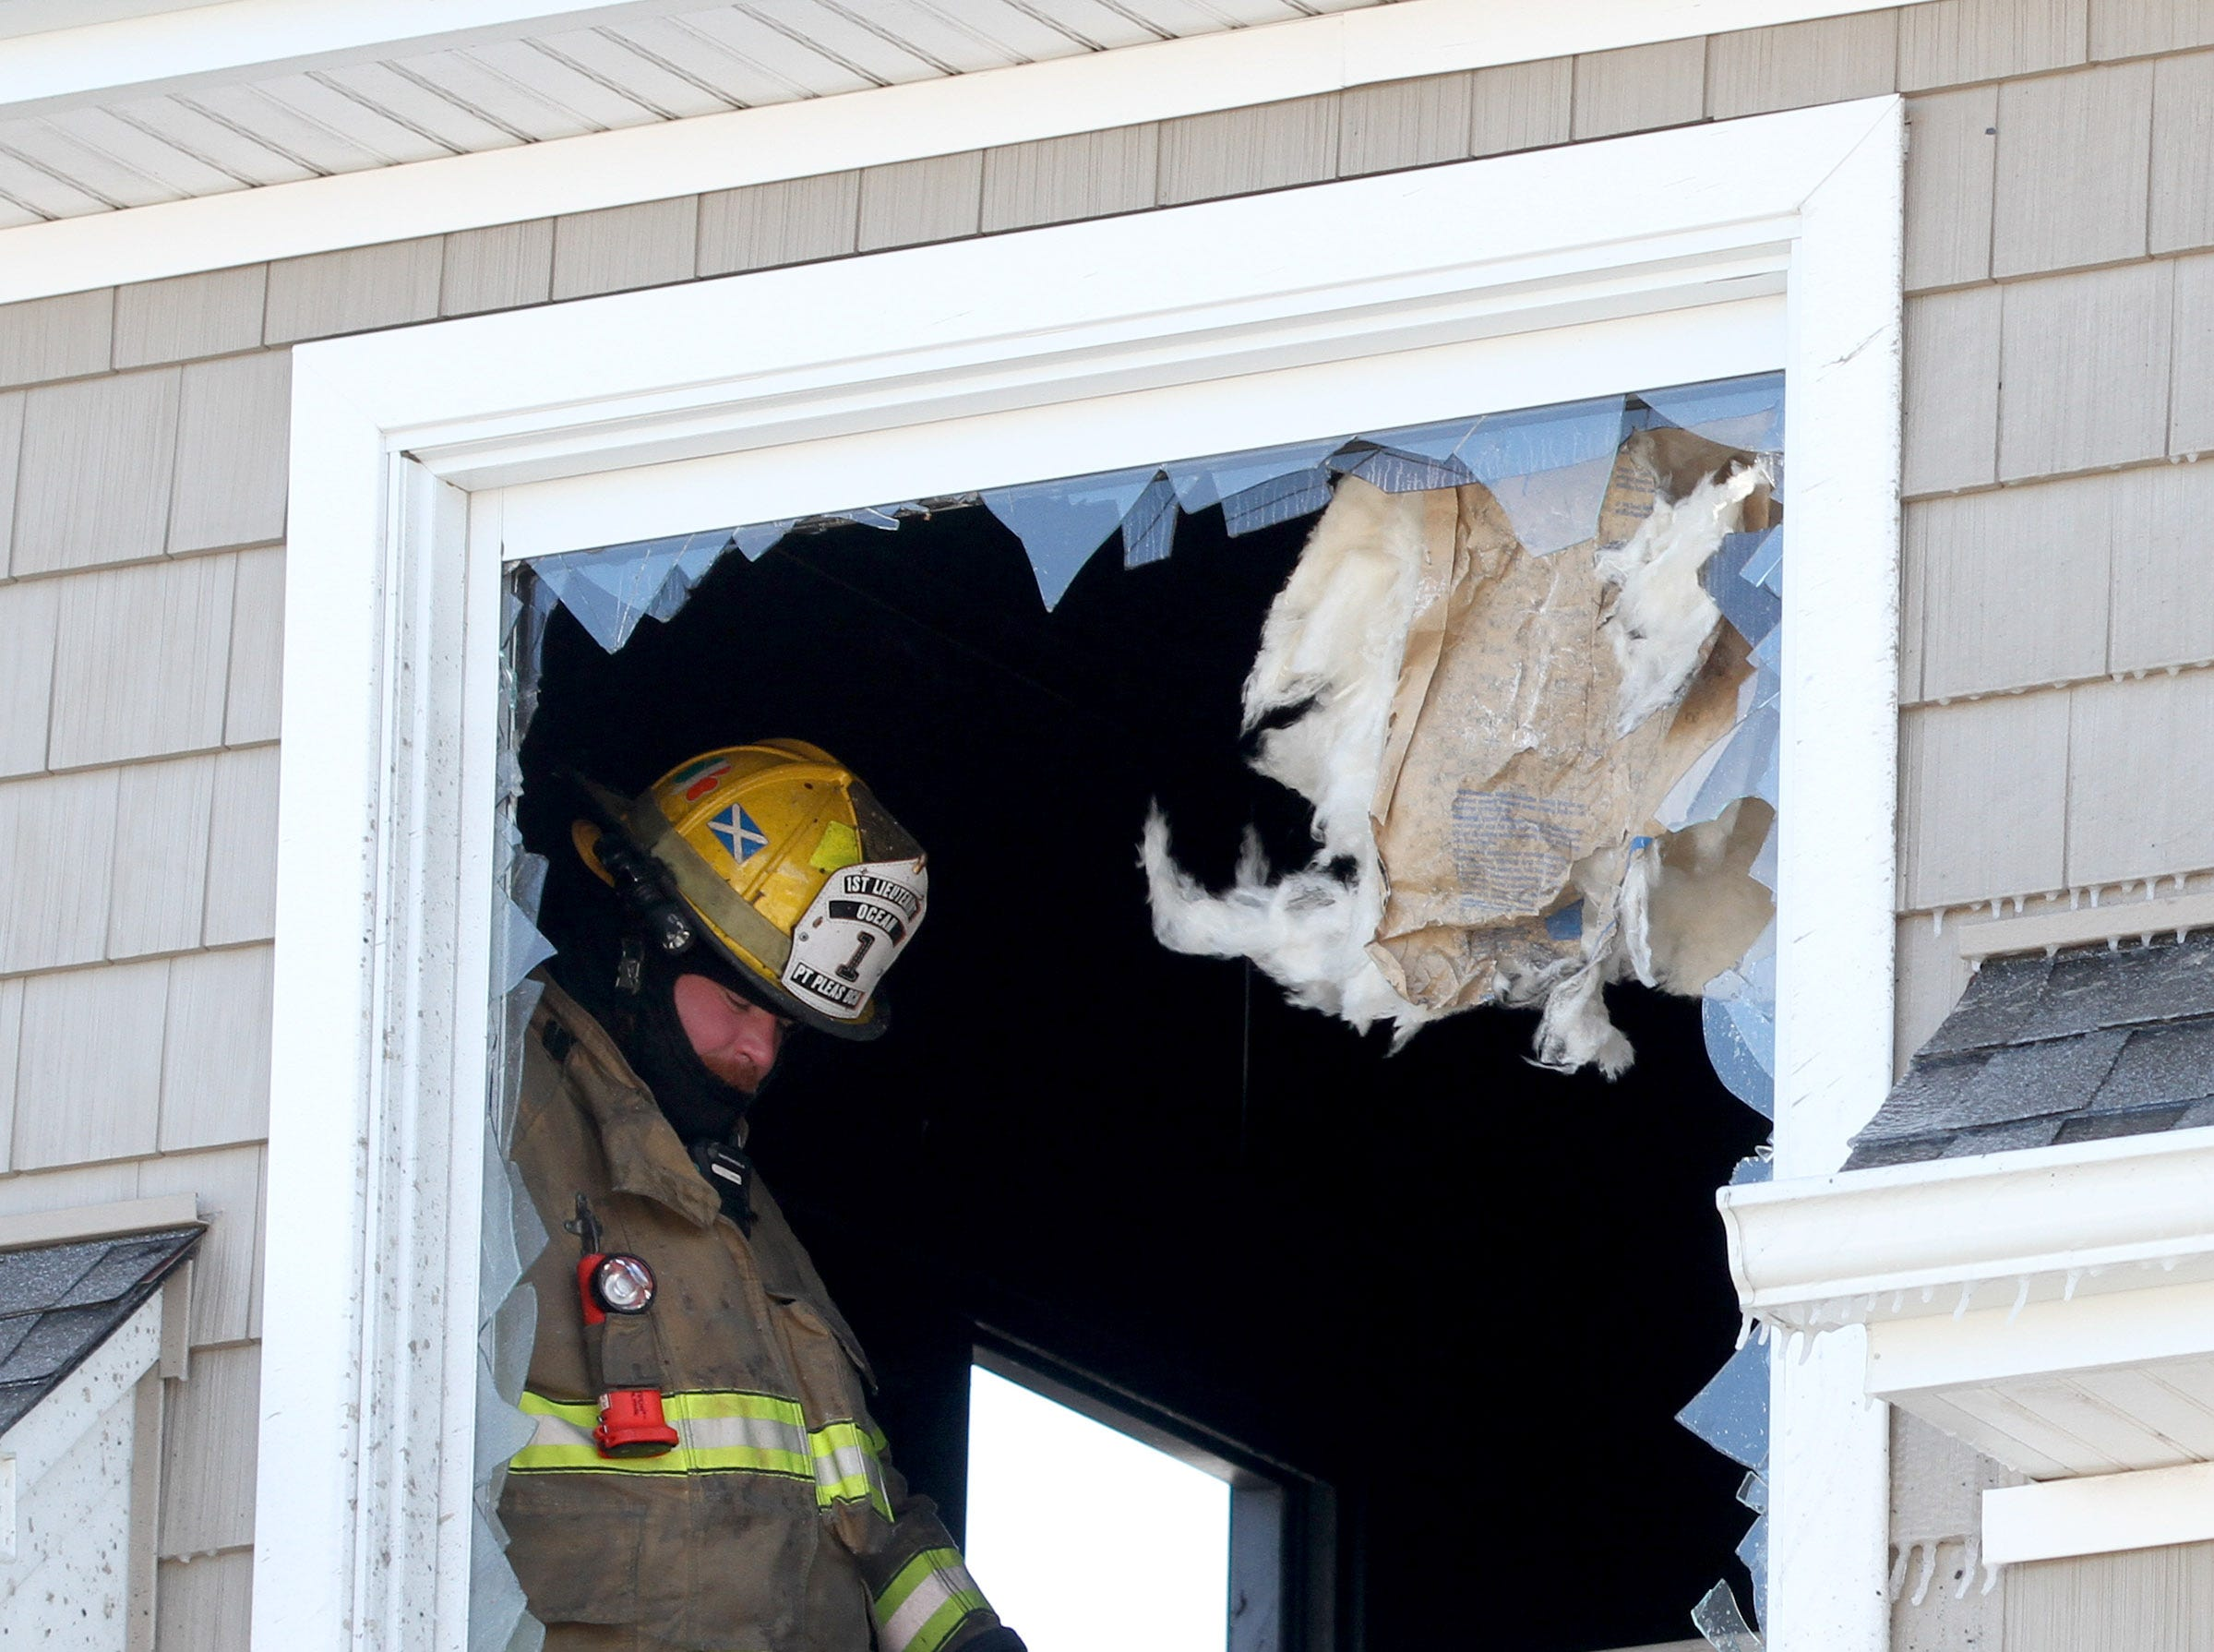 A firefighter is shown in a residence next to Point Lobster Company in Point Pleasant Beac Monday afternoon, January 21, 2019, after a fire was extinguished there.